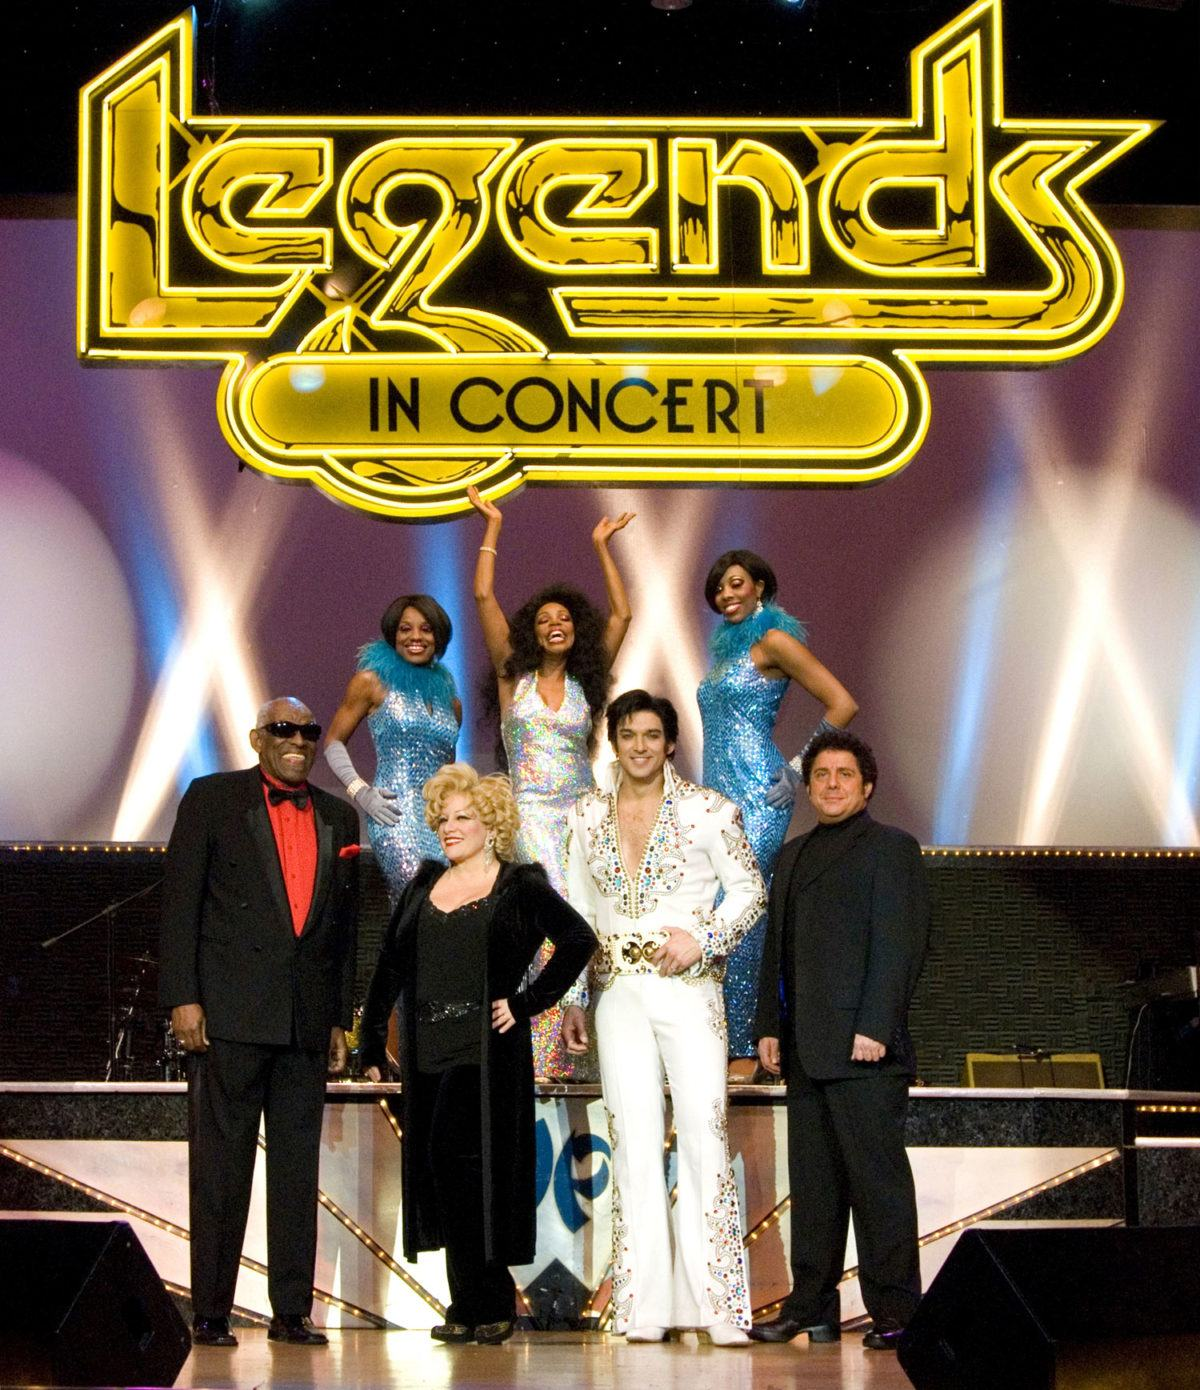 legends in concert flamingo las vegas